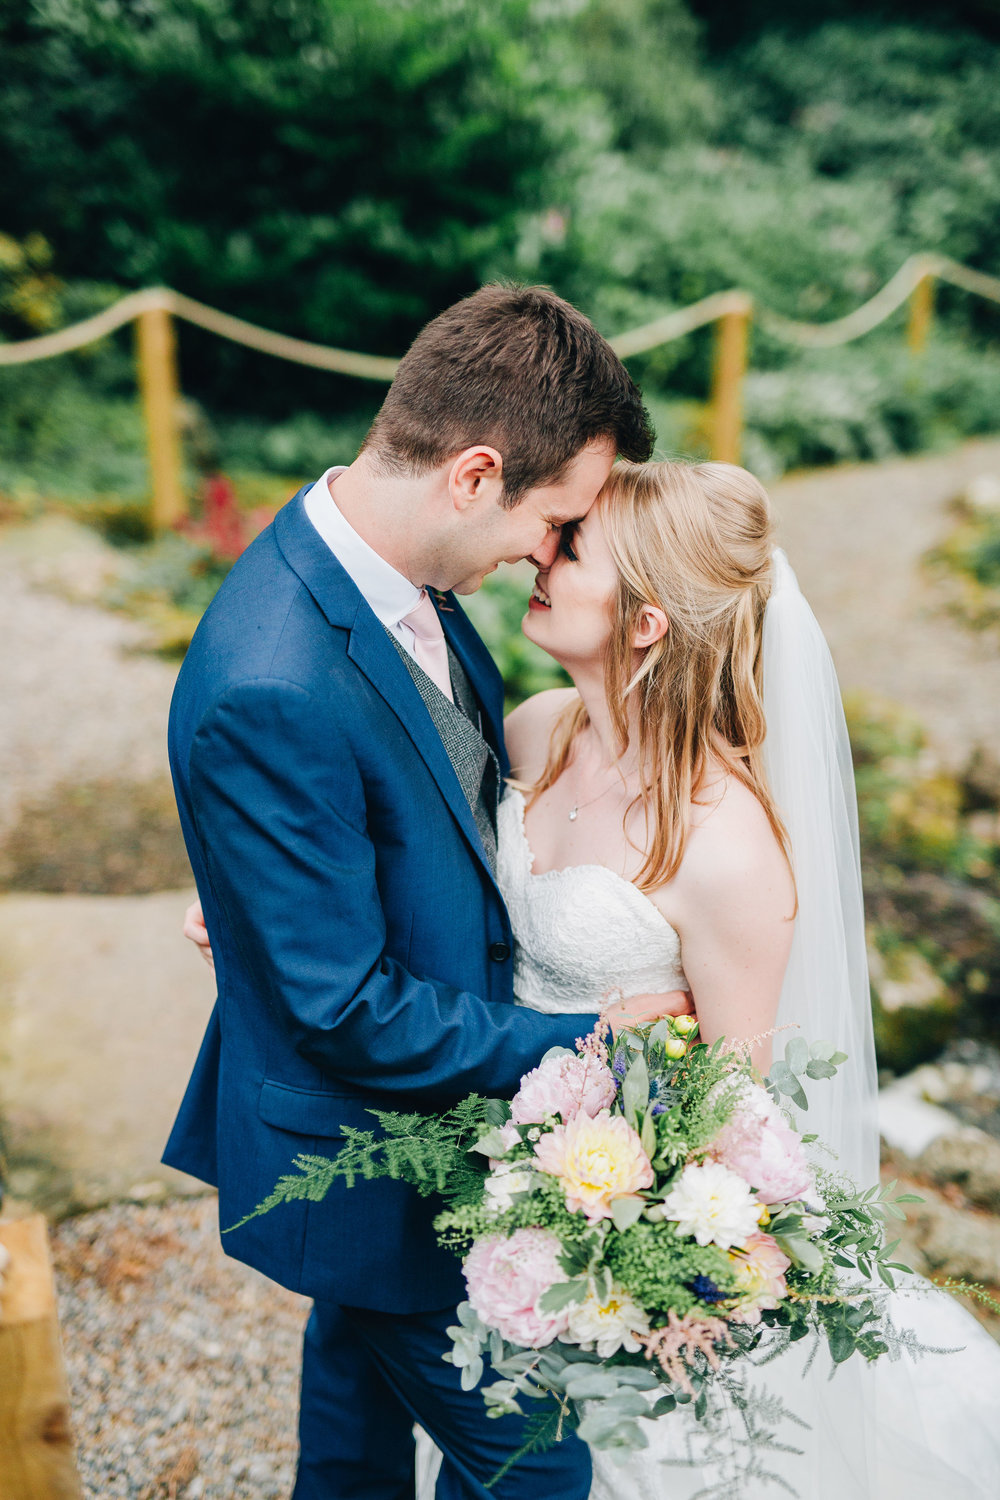 lovely relaxed portraits at Mitton Hall wedding